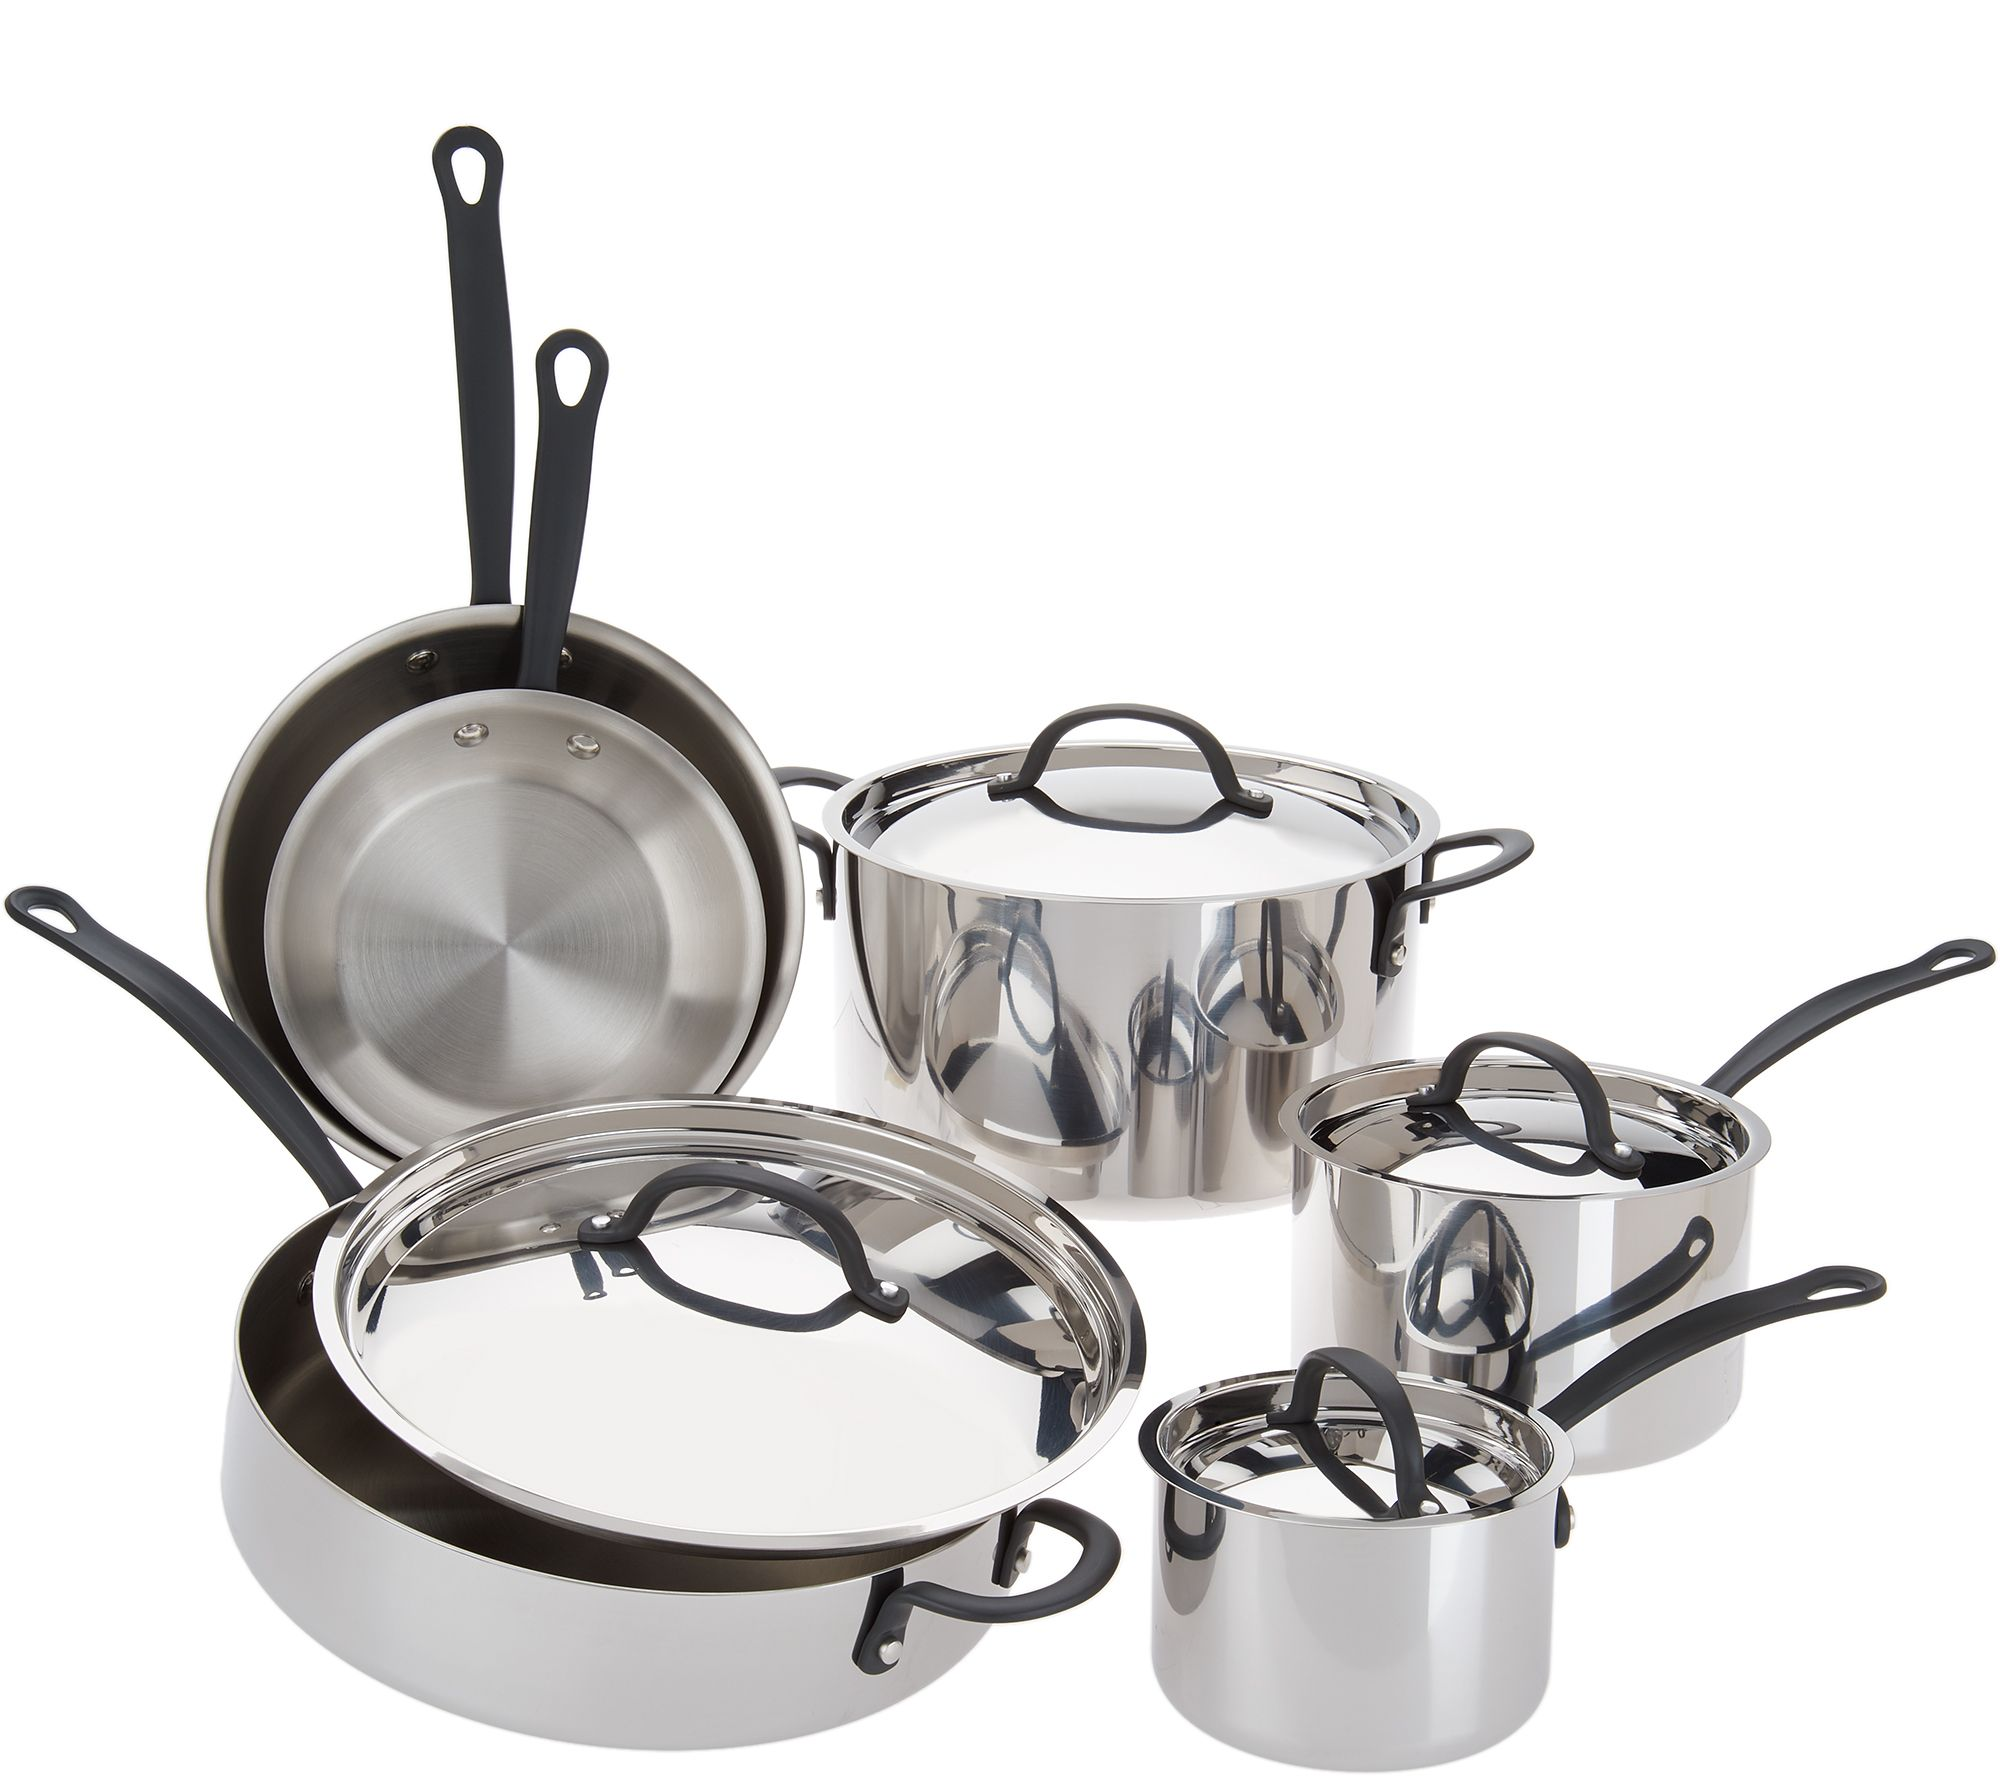 Signature 10 Pc Tri Ply Cookware Set